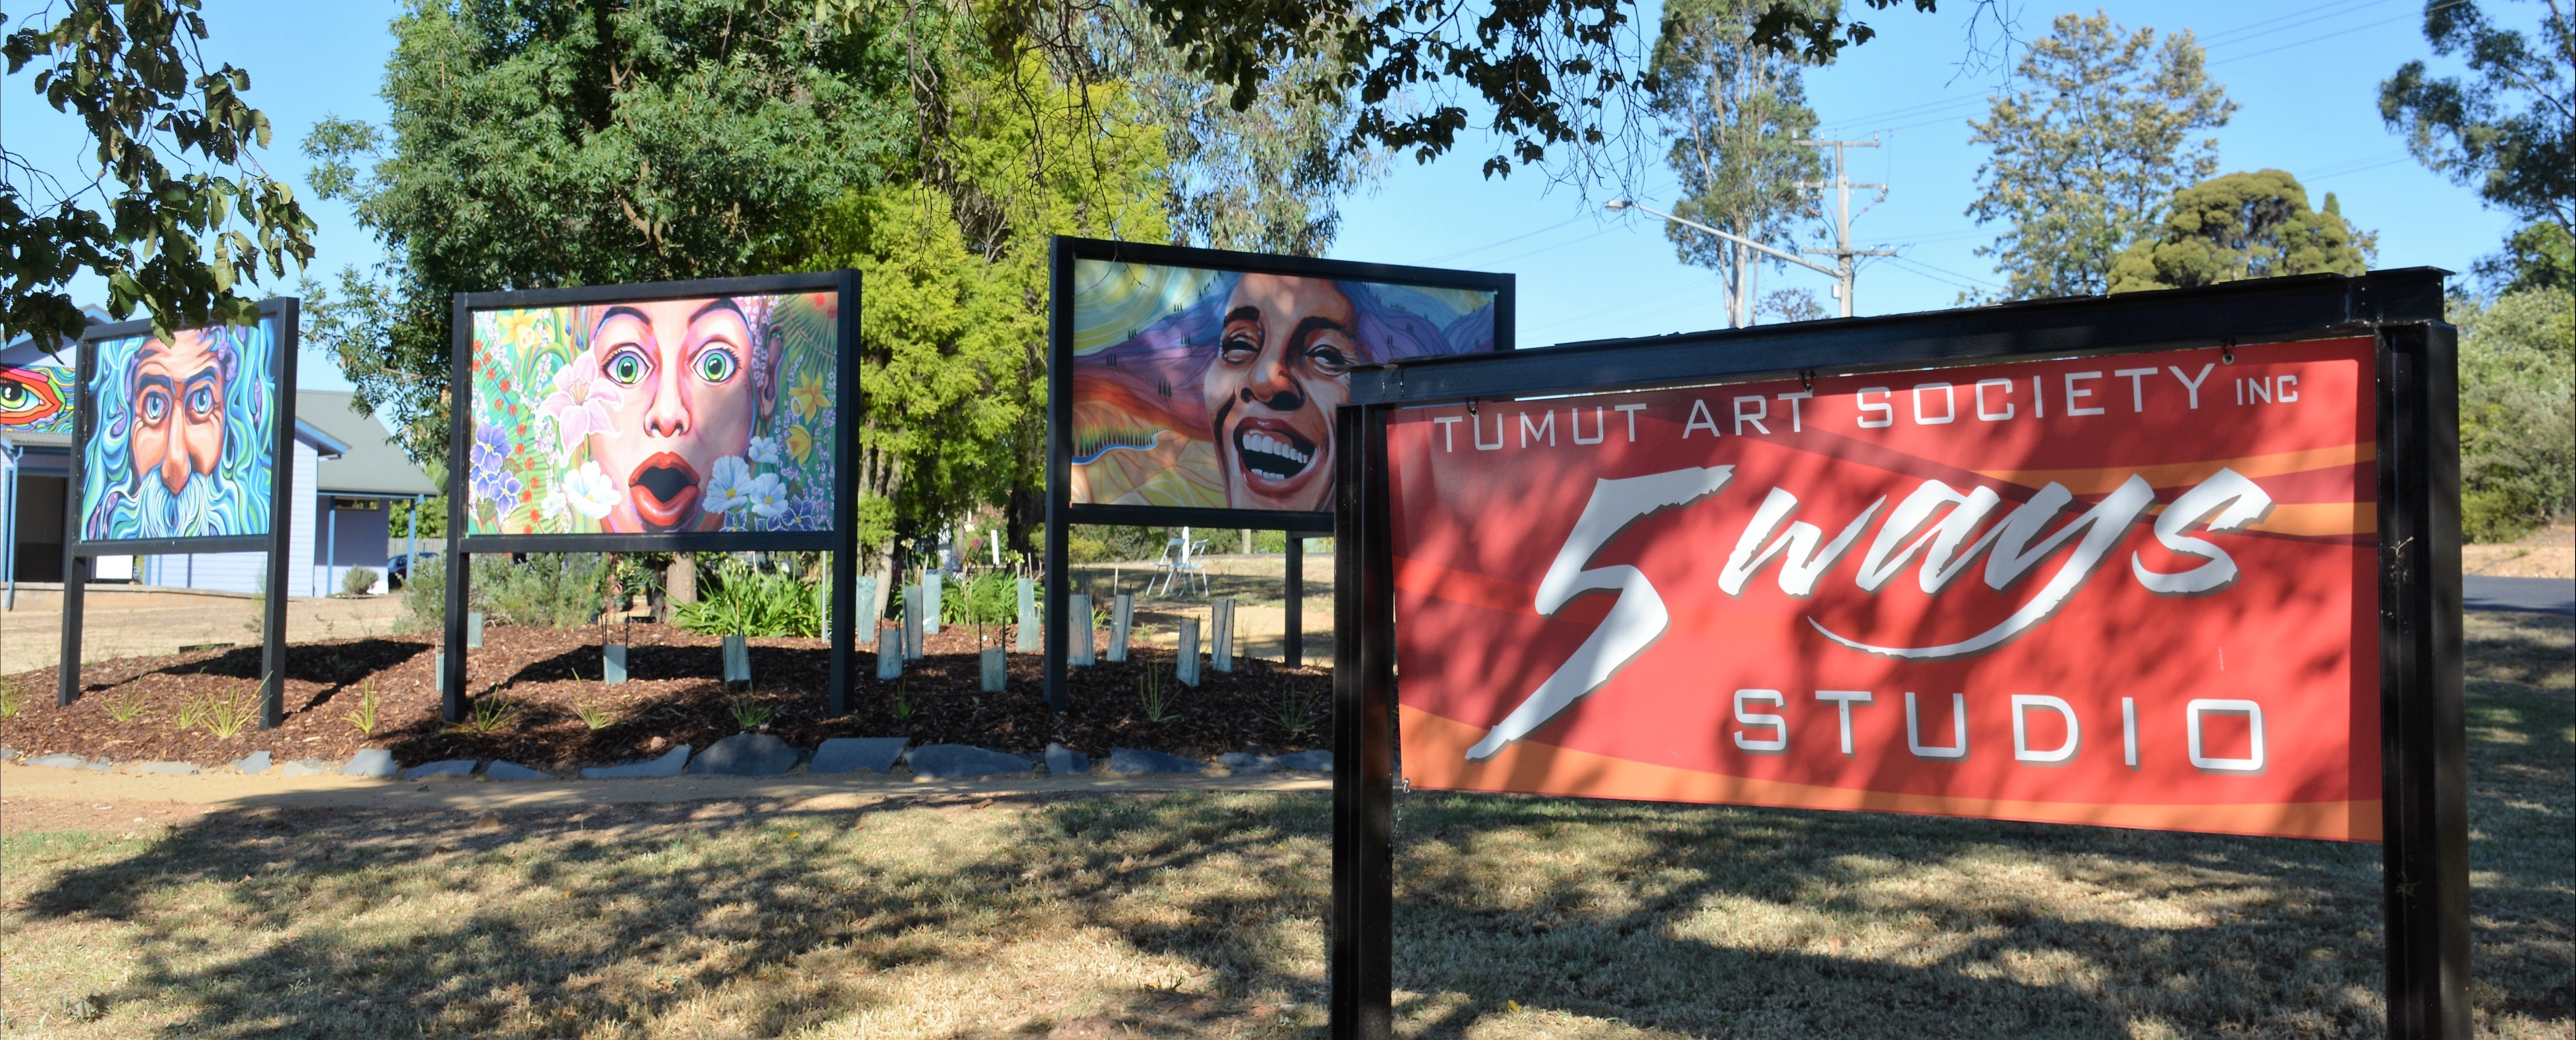 Tumut Art Society 5Ways Gallery - Geraldton Accommodation